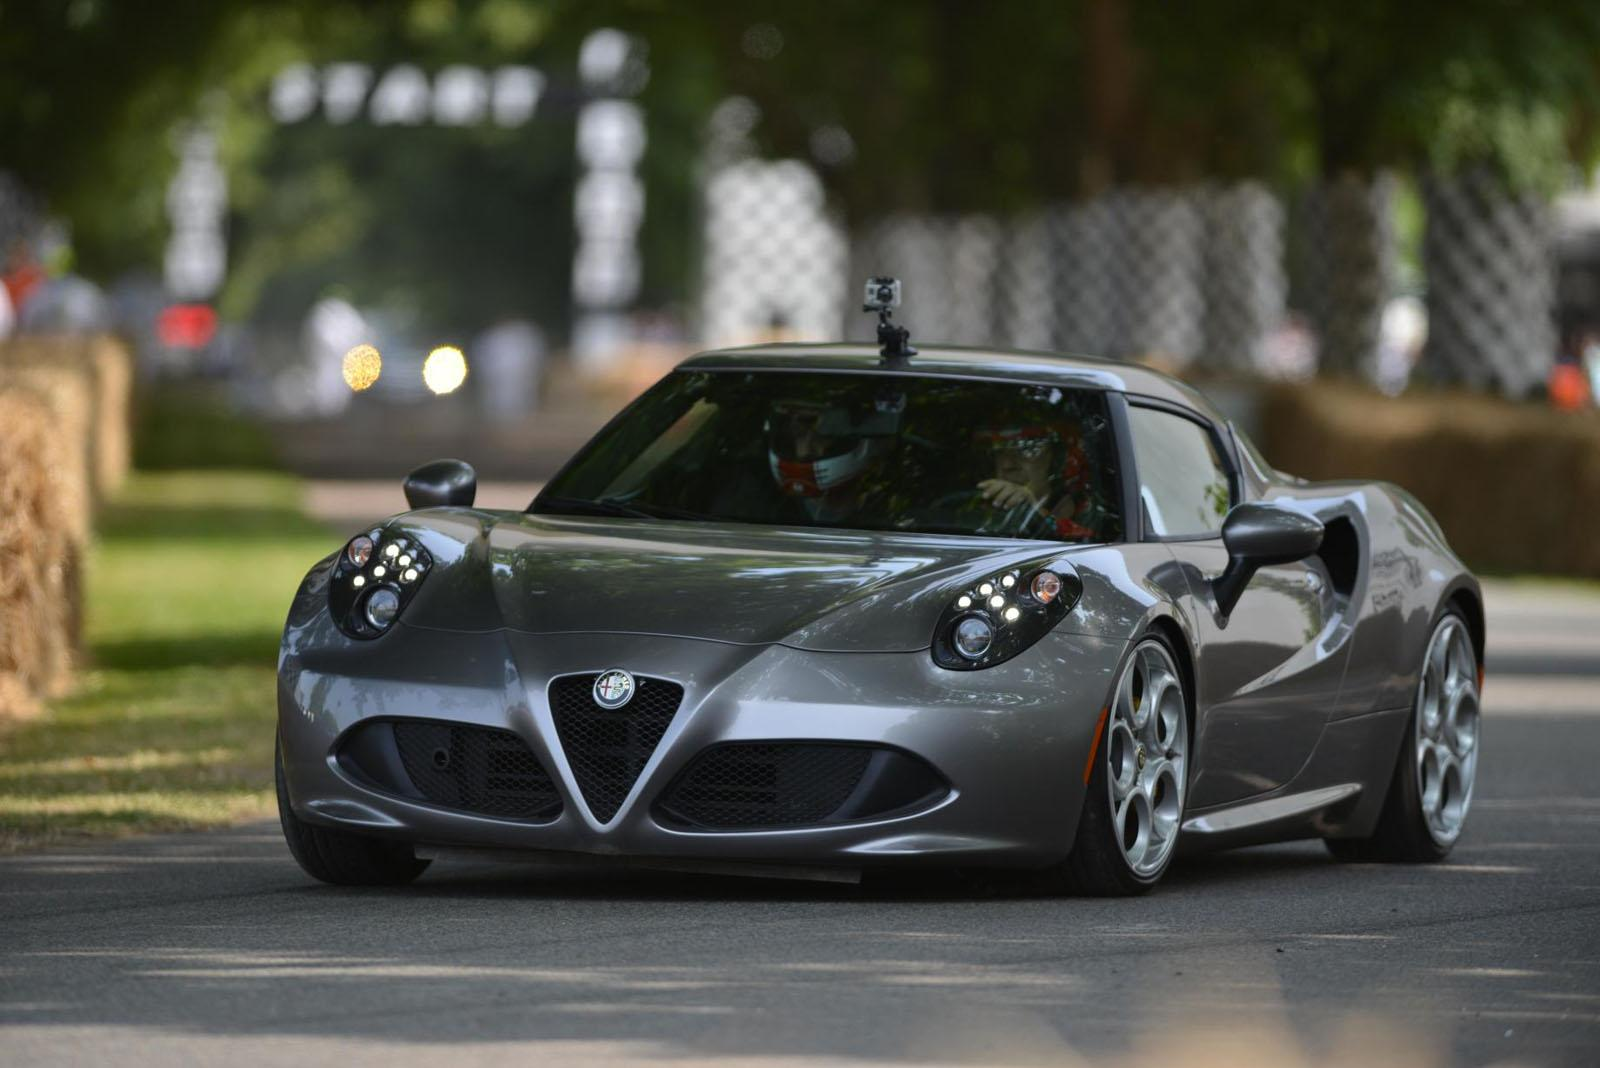 Lexus Hybrid Suv >> Alfa Romeo Cars - News: 4C debuts at Goodwood Festival